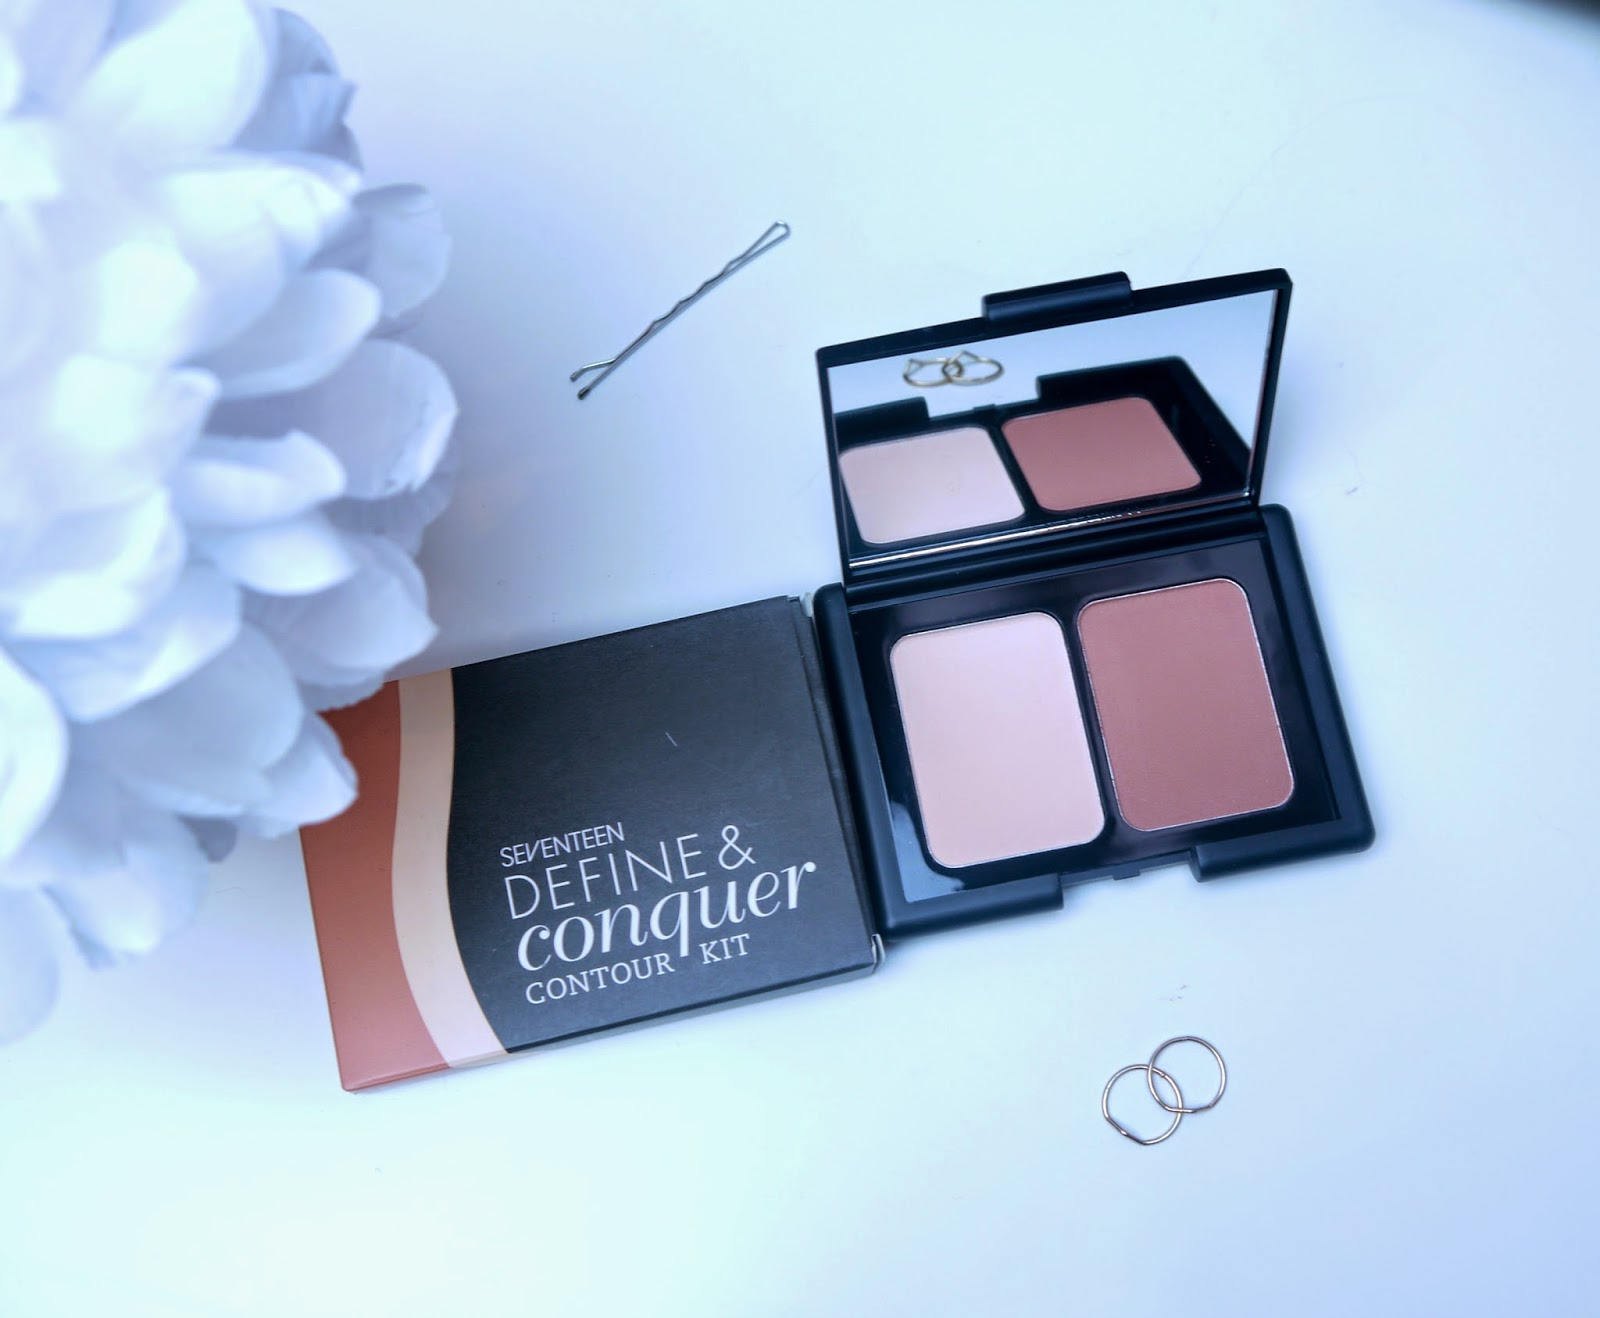 Seventeen Define and Conquer Contour Kit Review